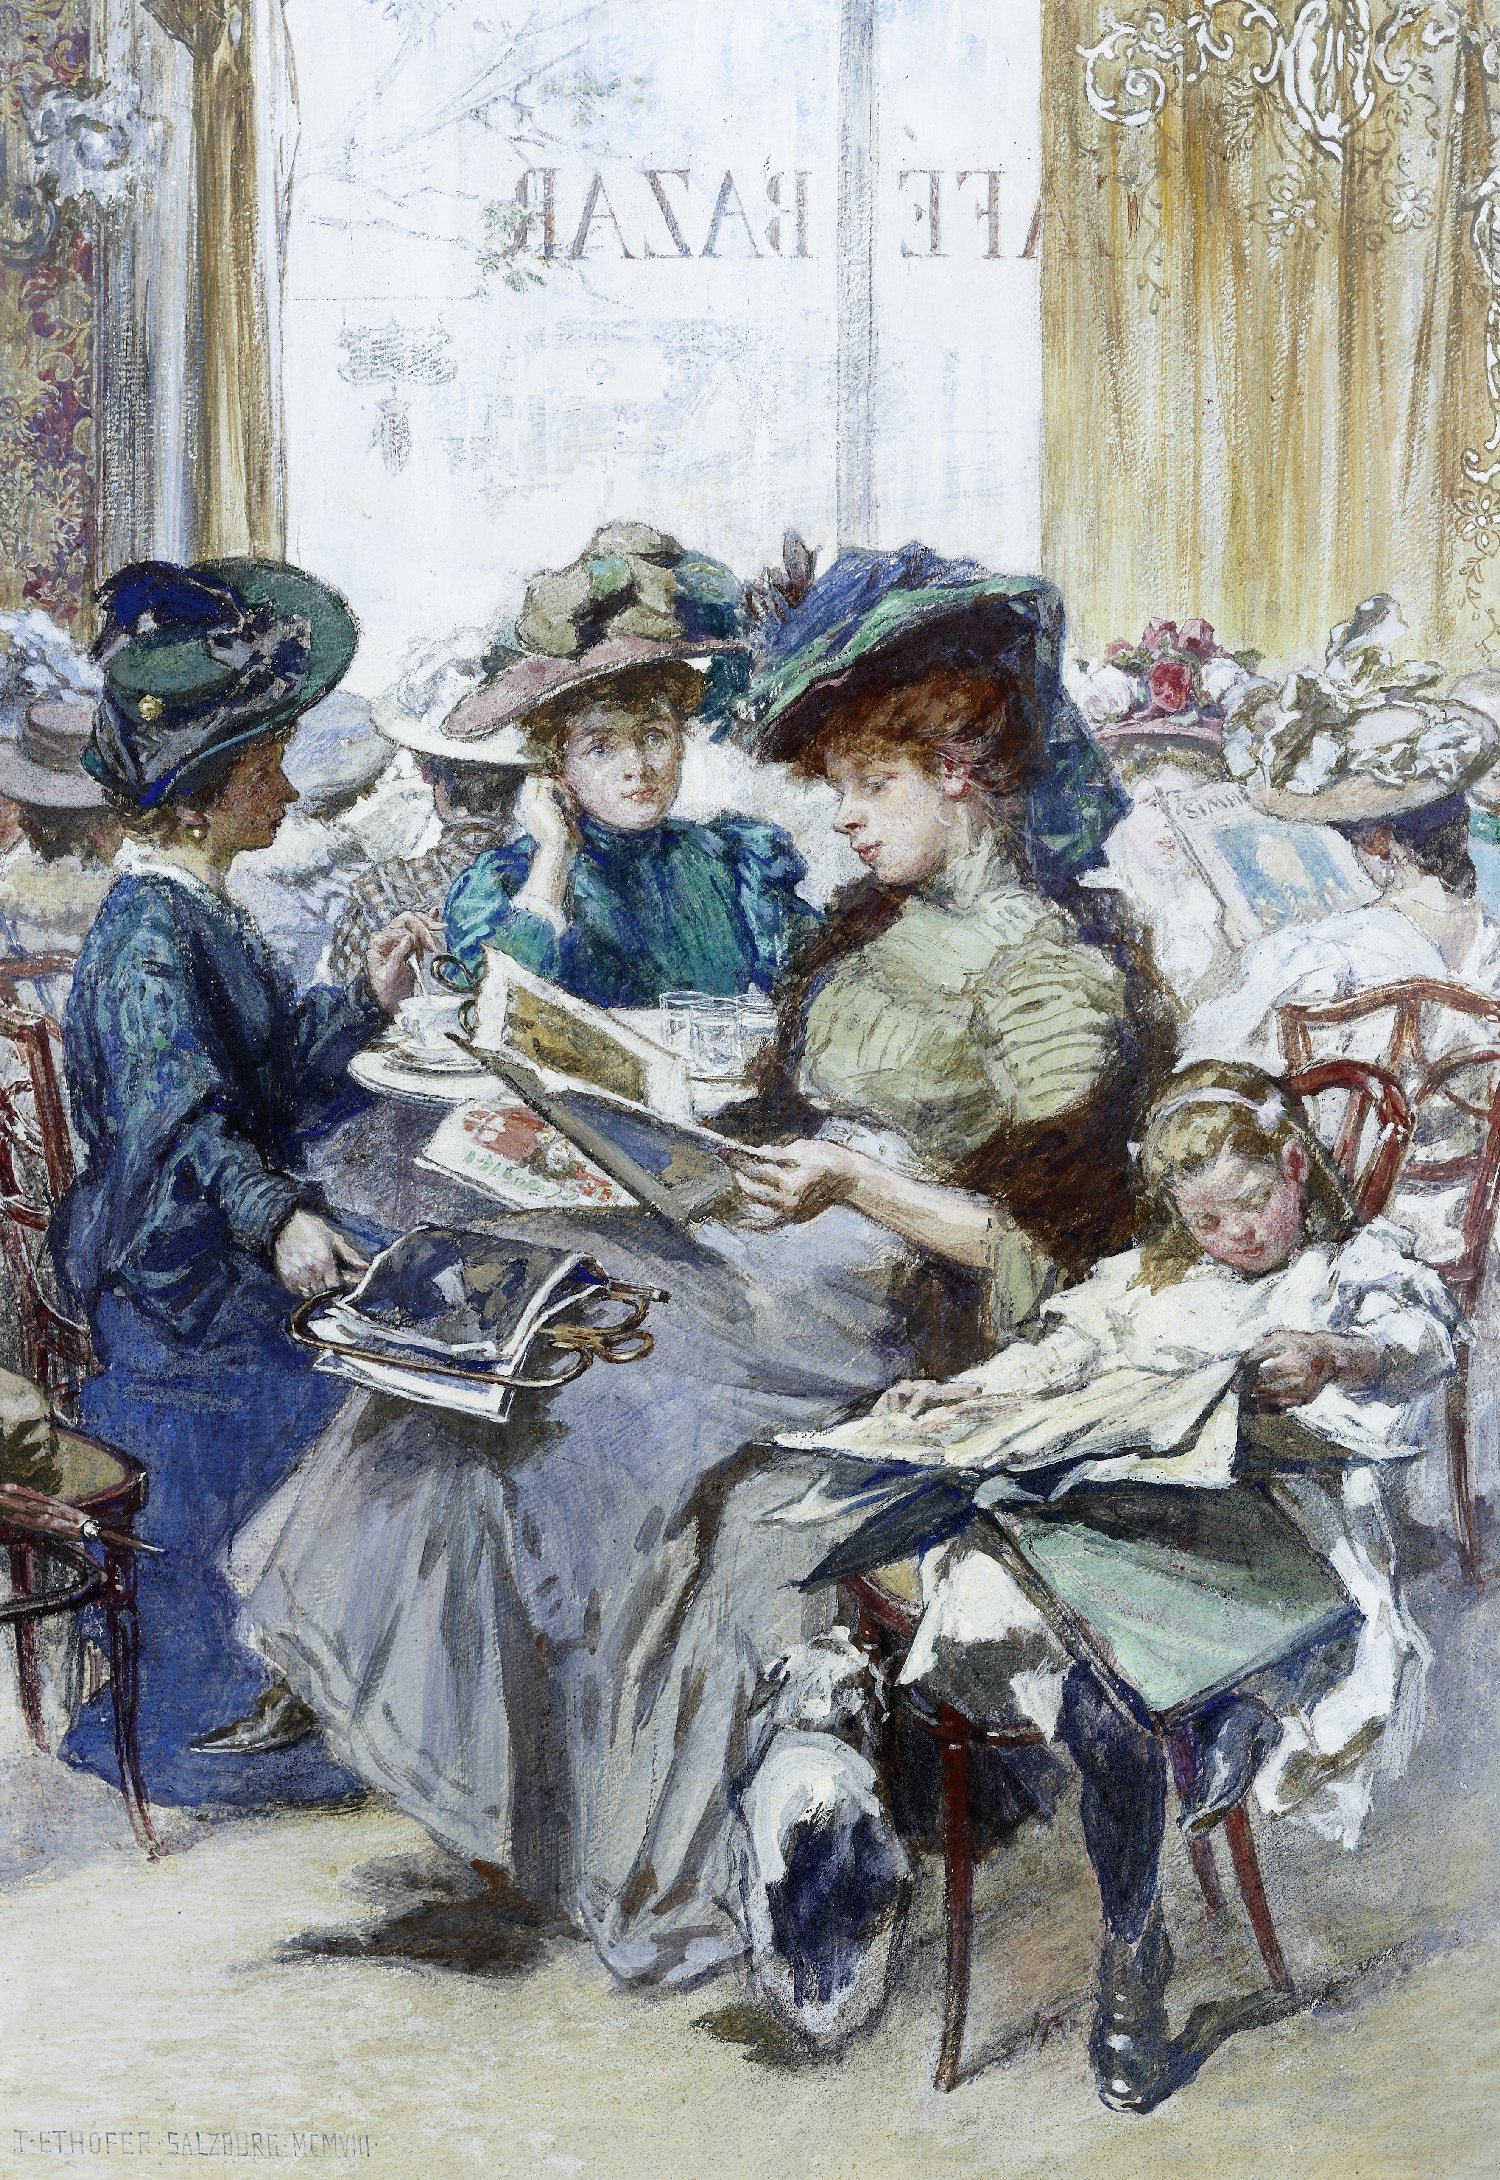 Ladies in the Café Bazar in Salzburg, Theodor Ethofer, 1908, inv. no. 1015-94